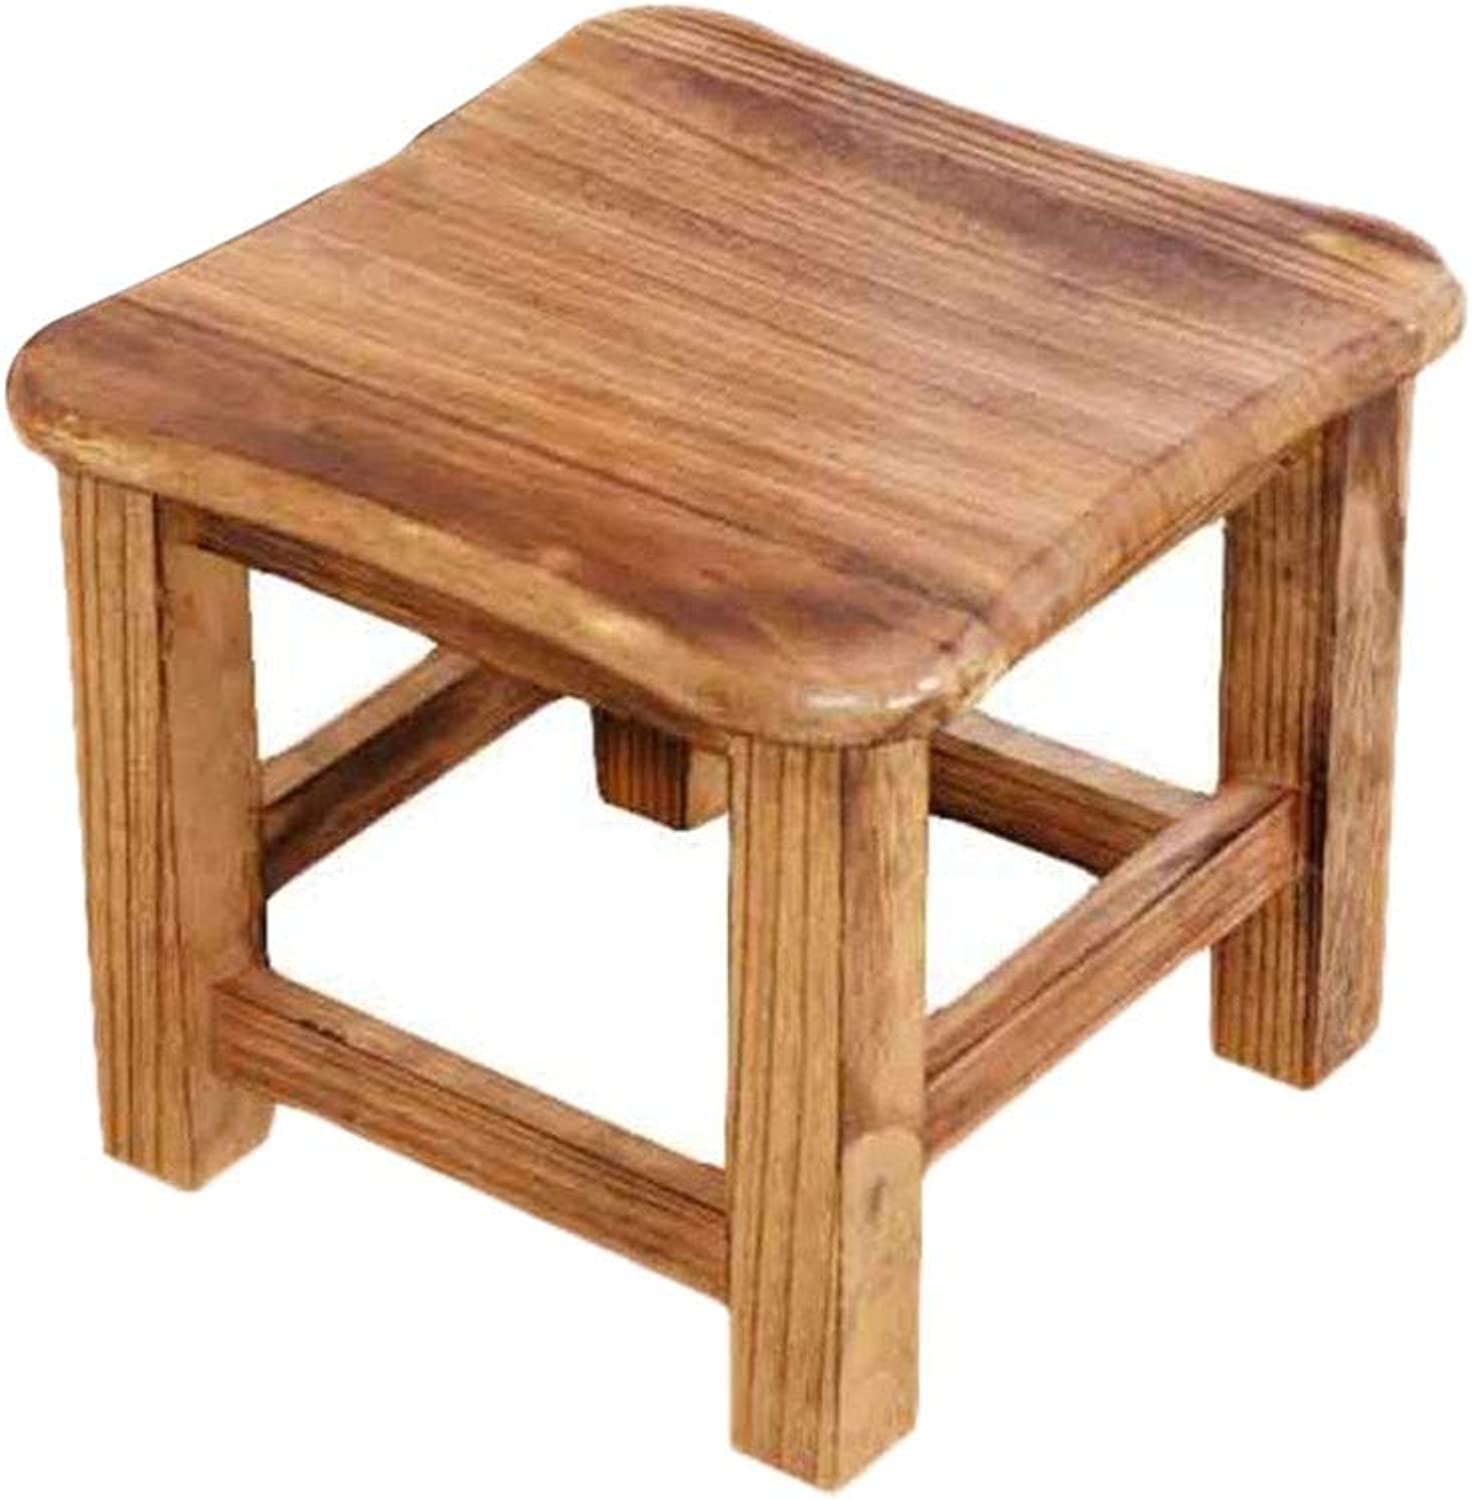 Small Wood Footstool Footrest Stool, Sofa Coffee Table Stool shoes Change Stool with Wood Legs Home Living Room-A